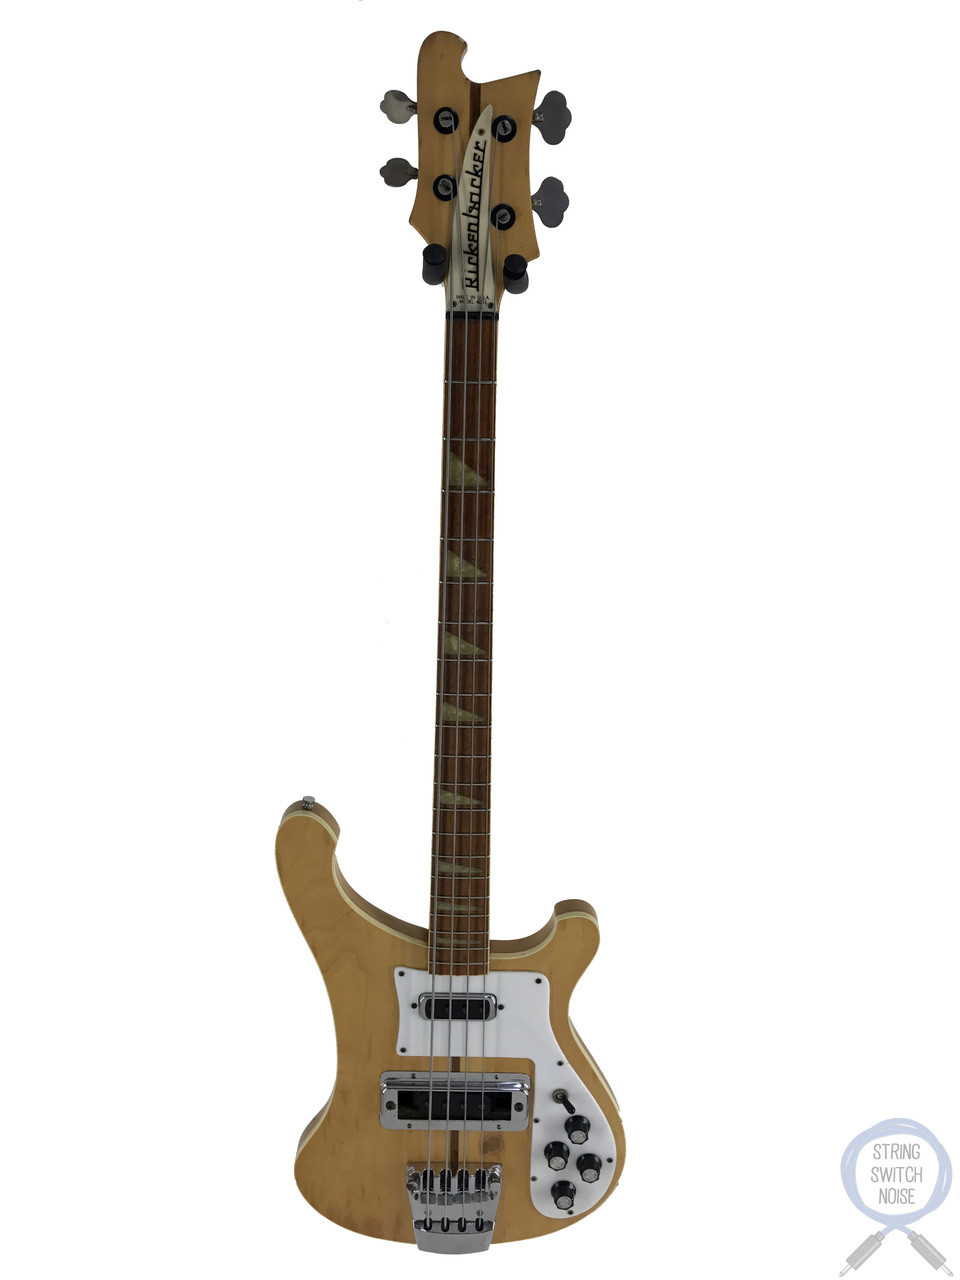 rickenbacker 4001 bass usa 1978 vintage mapleglo original hard case [ 960 x 1280 Pixel ]